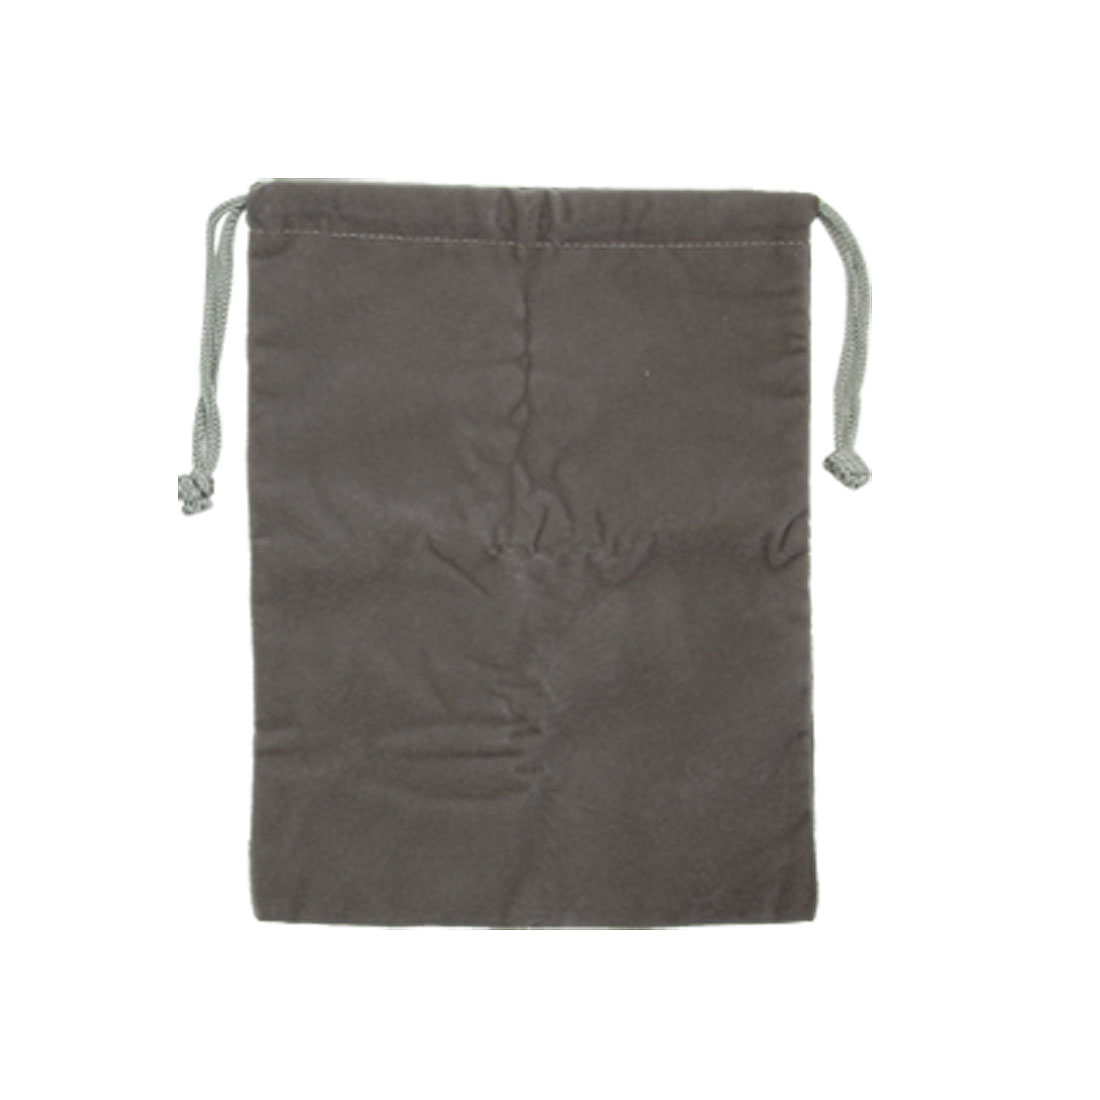 Medium Gray Cloth Carrying Protective Bag Pouch for Notebook Laptop